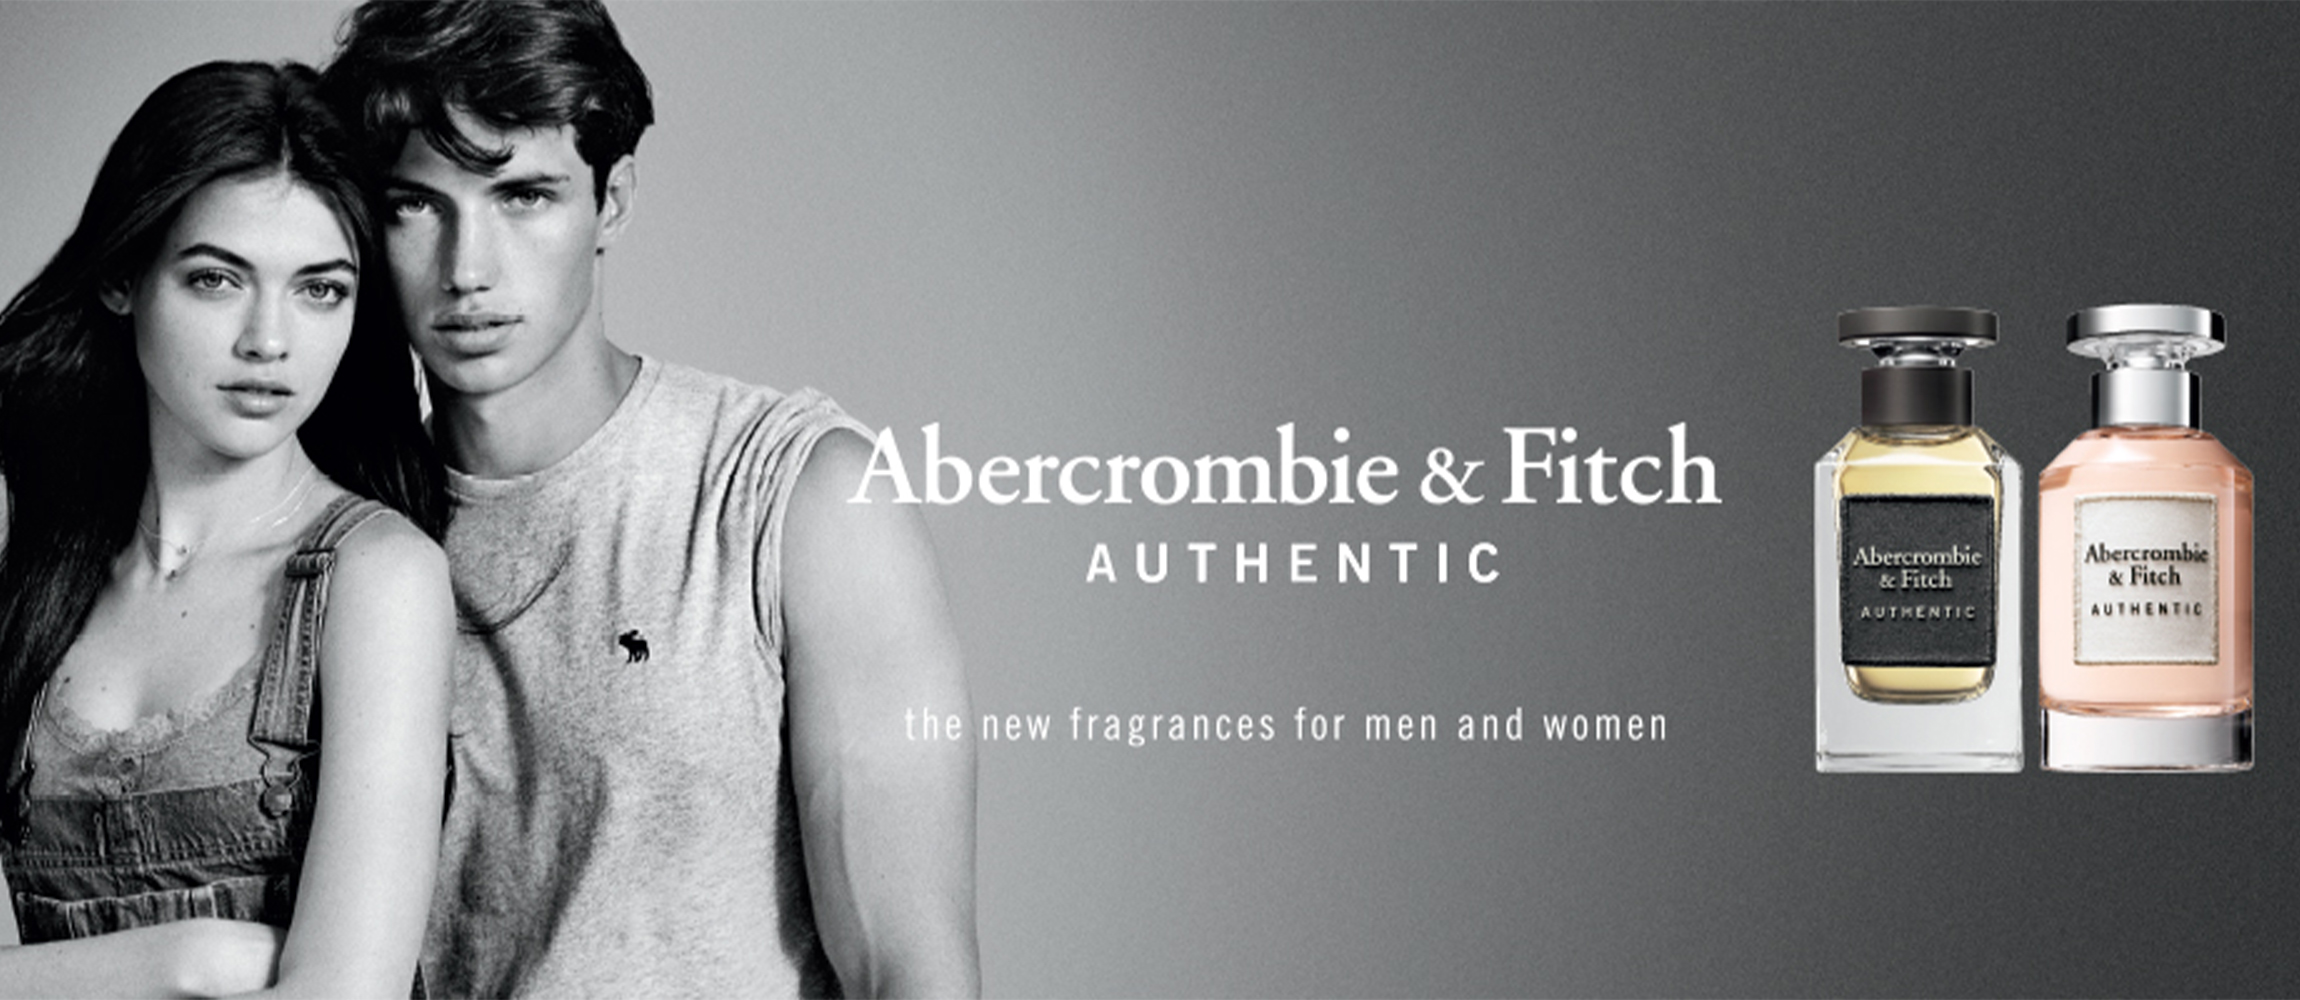 Abercrombie & Fitch, parfume, authentic